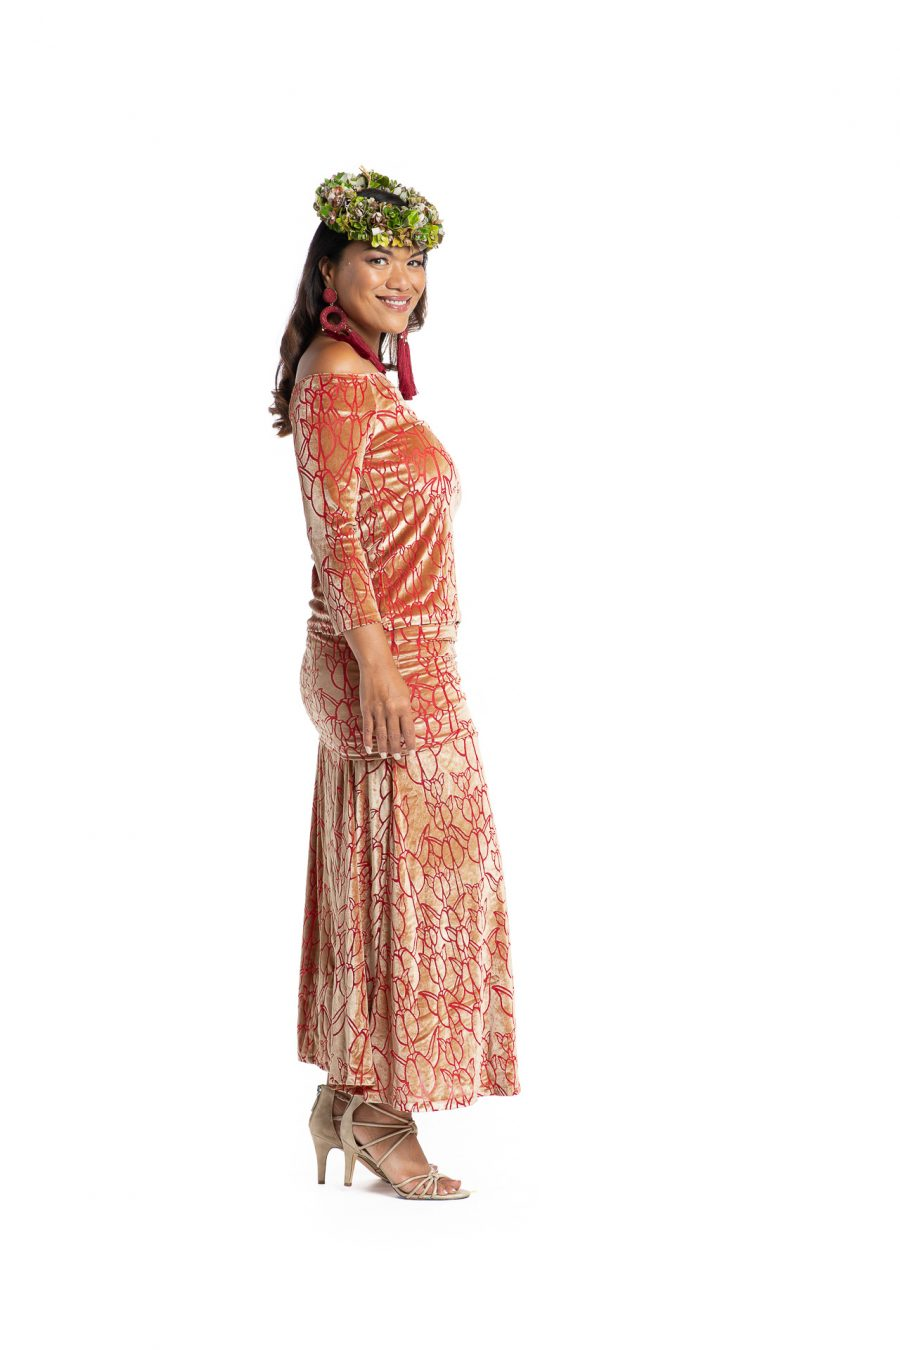 Model wearing Poohiwi Dress in Apricot - Side View